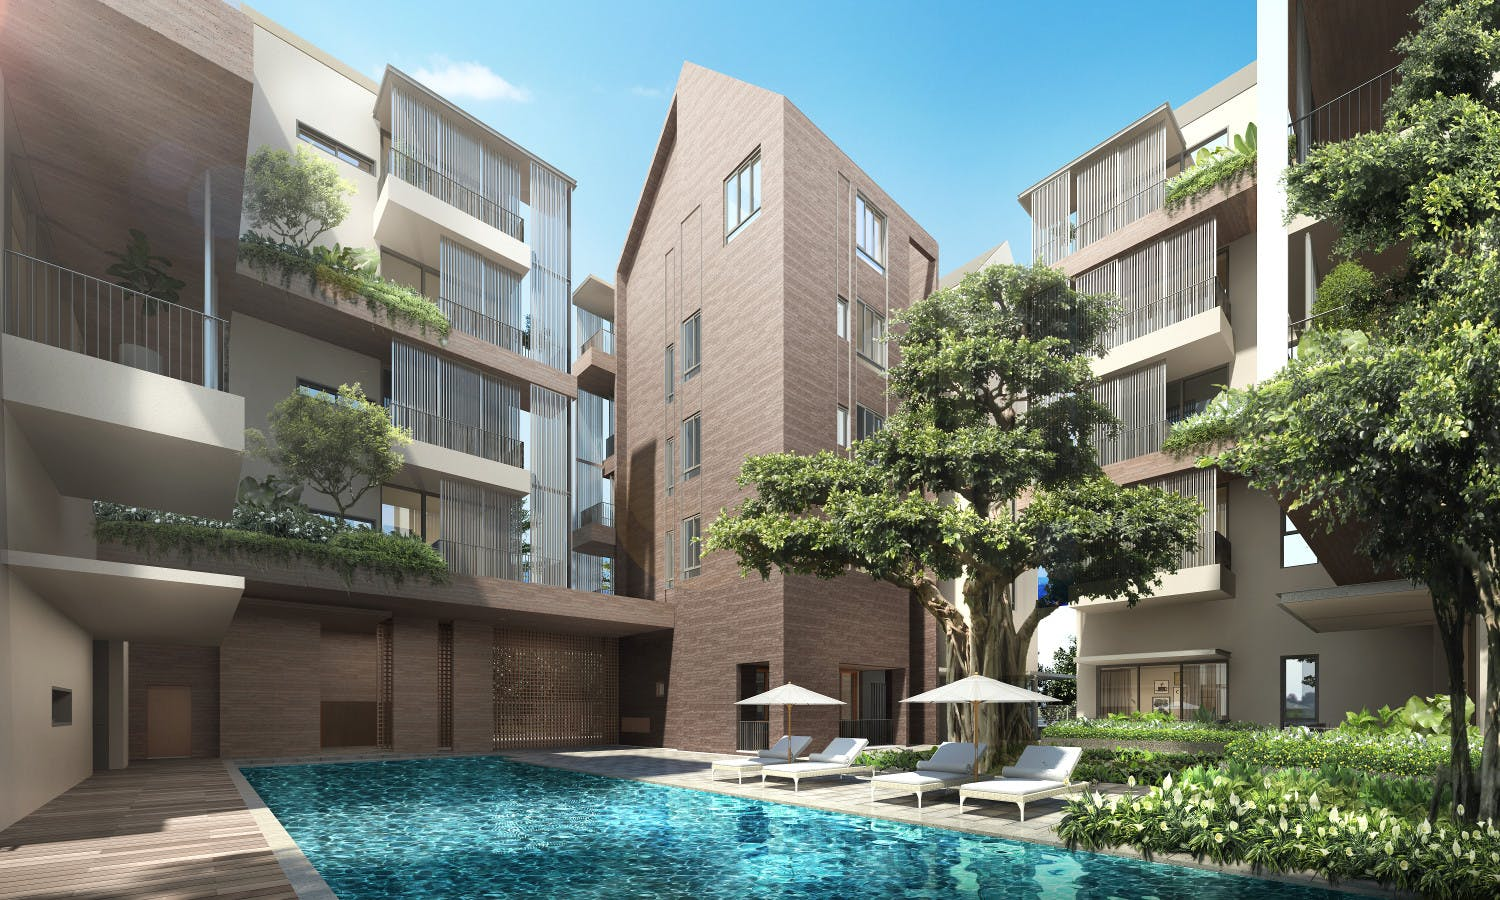 Artist's impression of 10 Evelyn condo pool